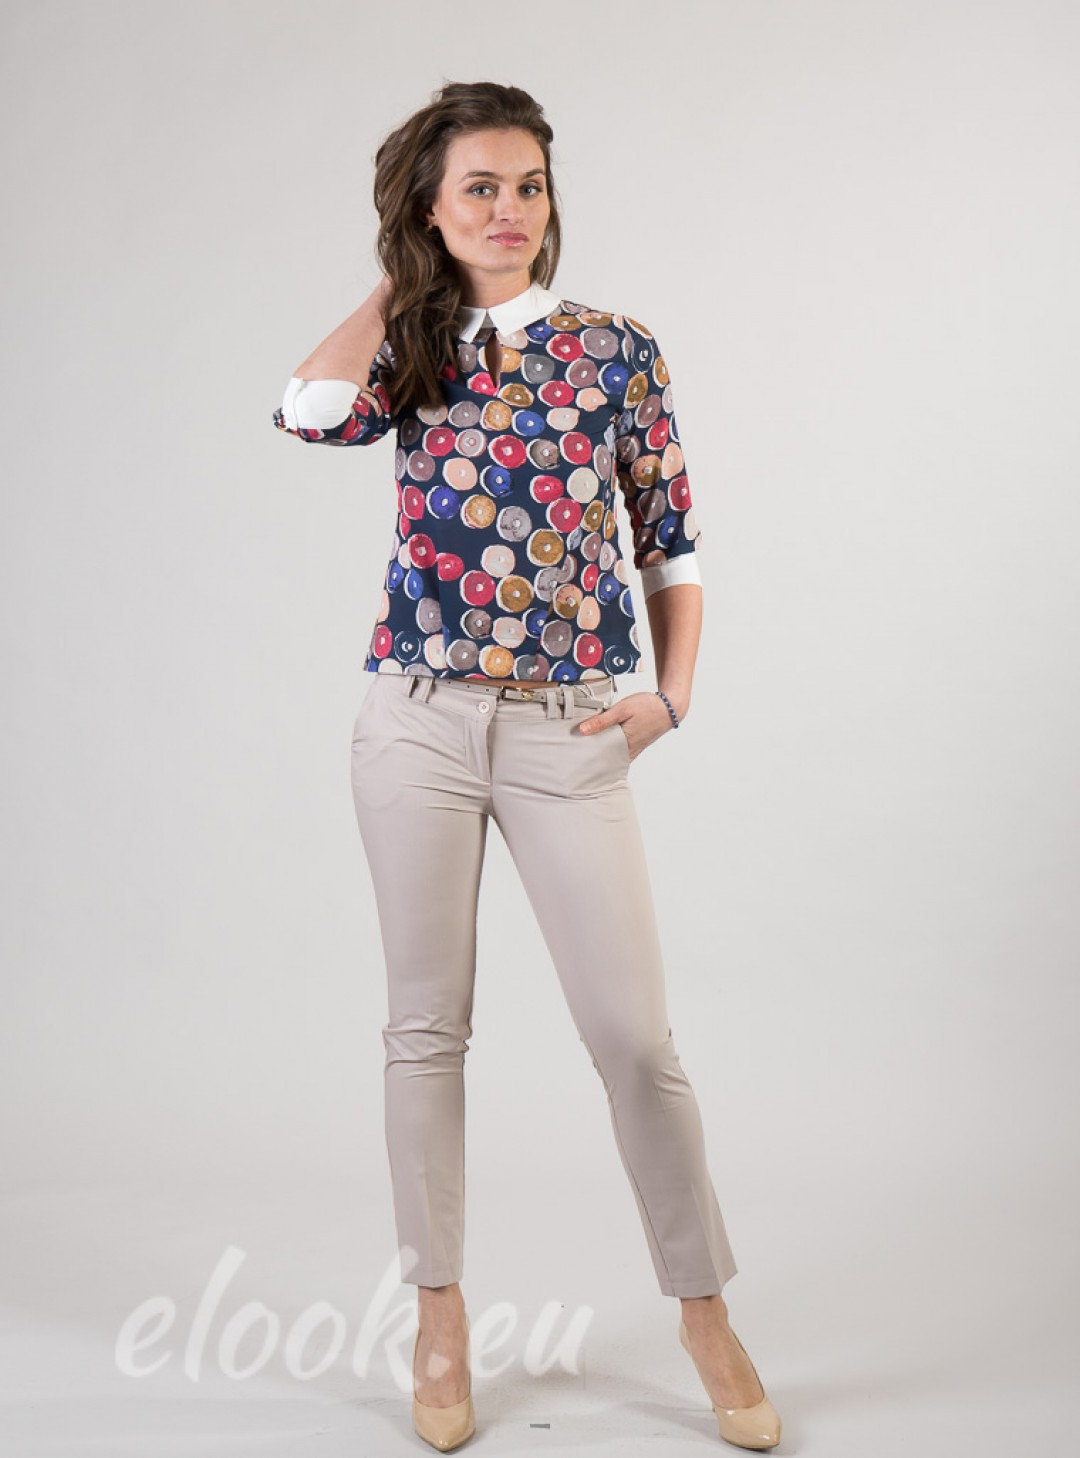 Blouse with cuffs and collar, ...